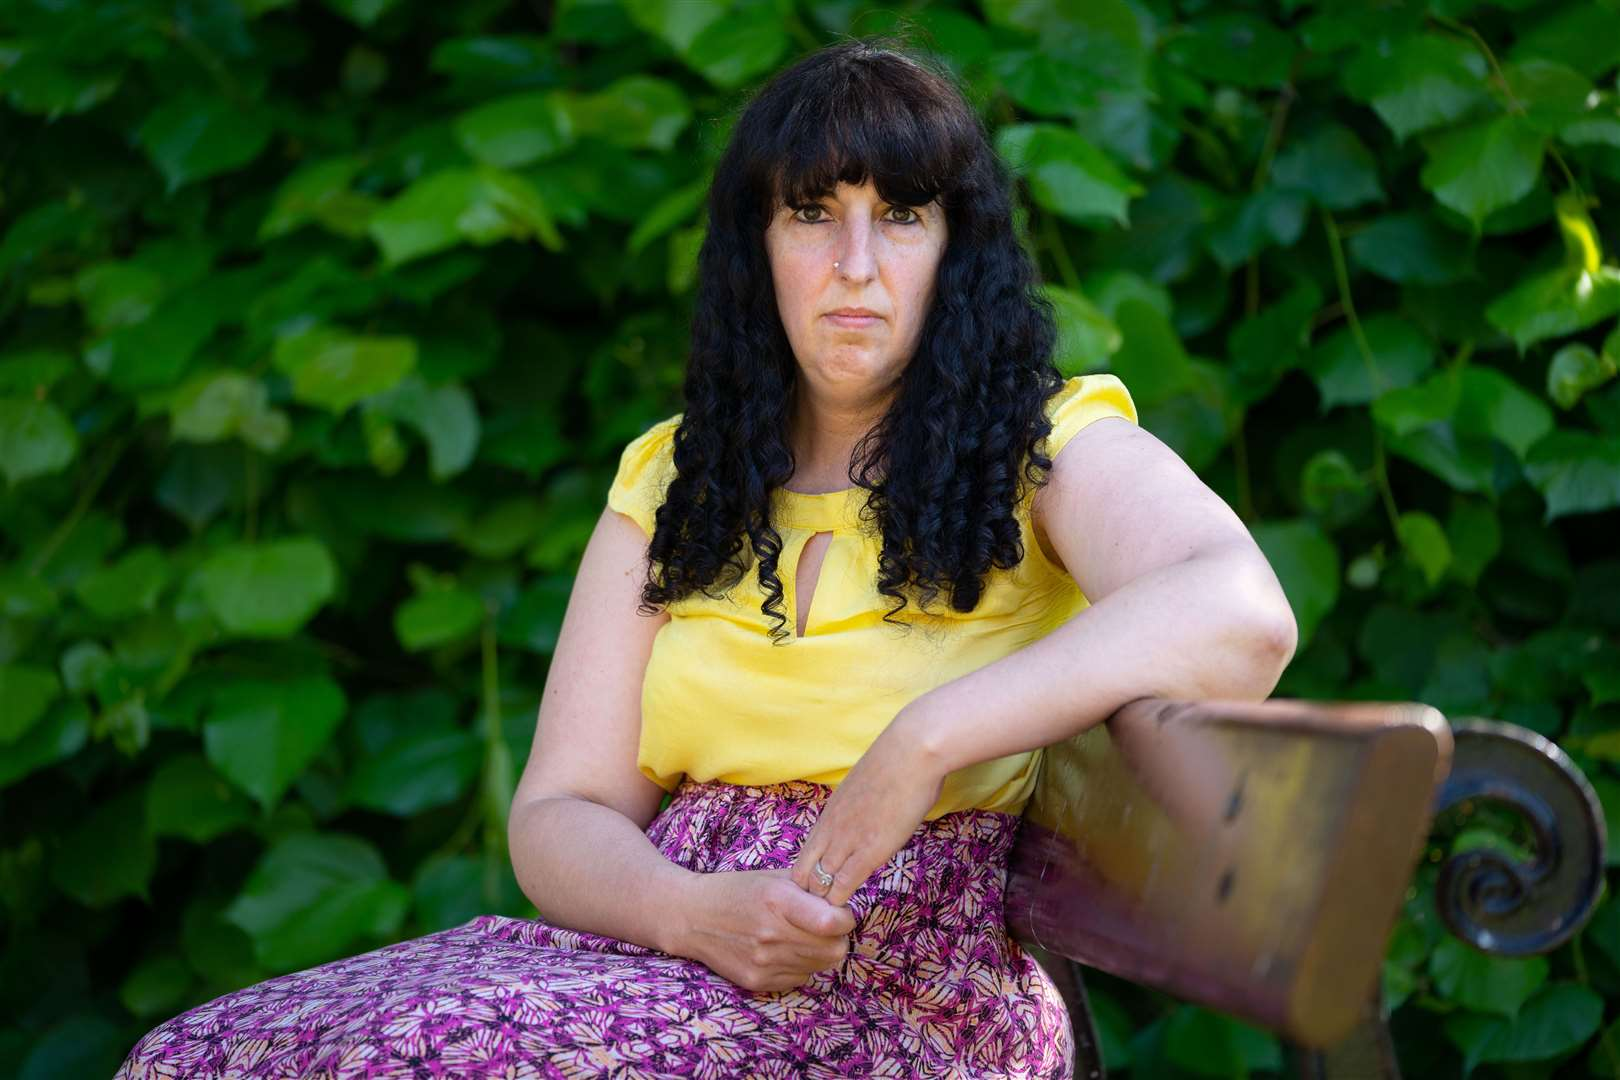 Sofia Gomes, 43, of Wisbech claims she has lost her voice hours after receiving her second AstraZeneca Covid injection